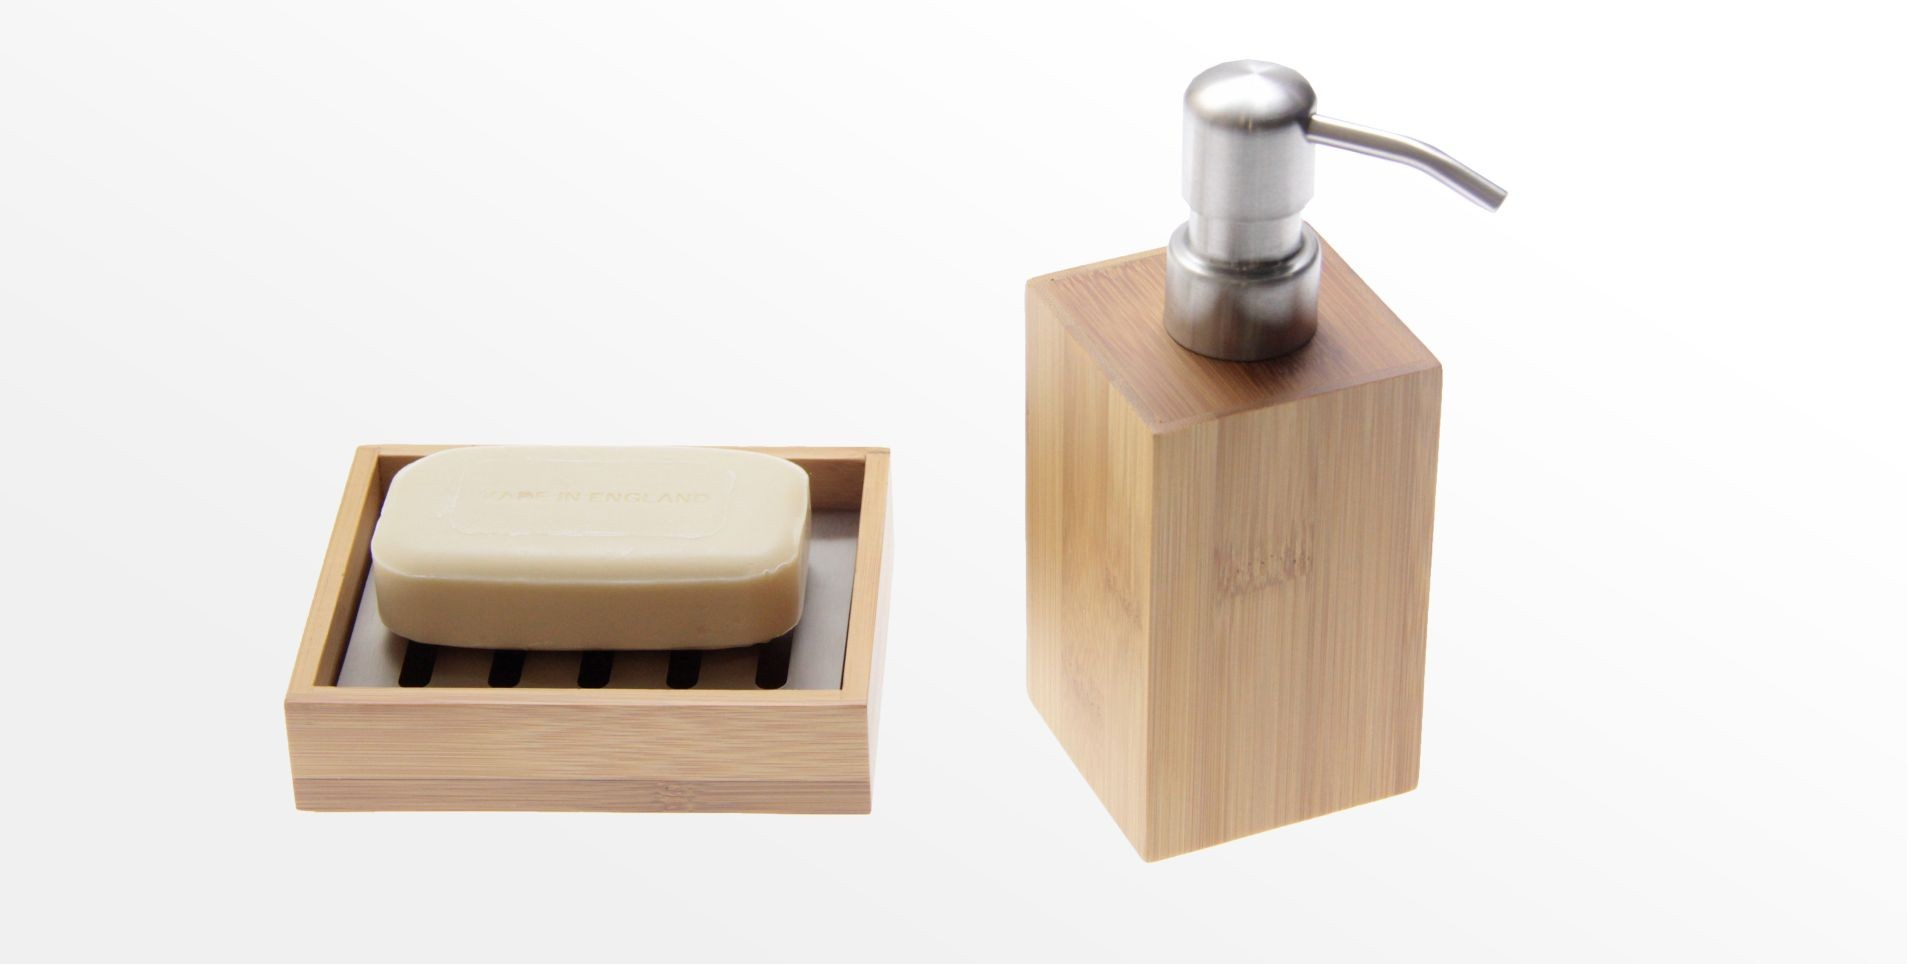 Bamboo Soap Dish and Lotion Dispenser